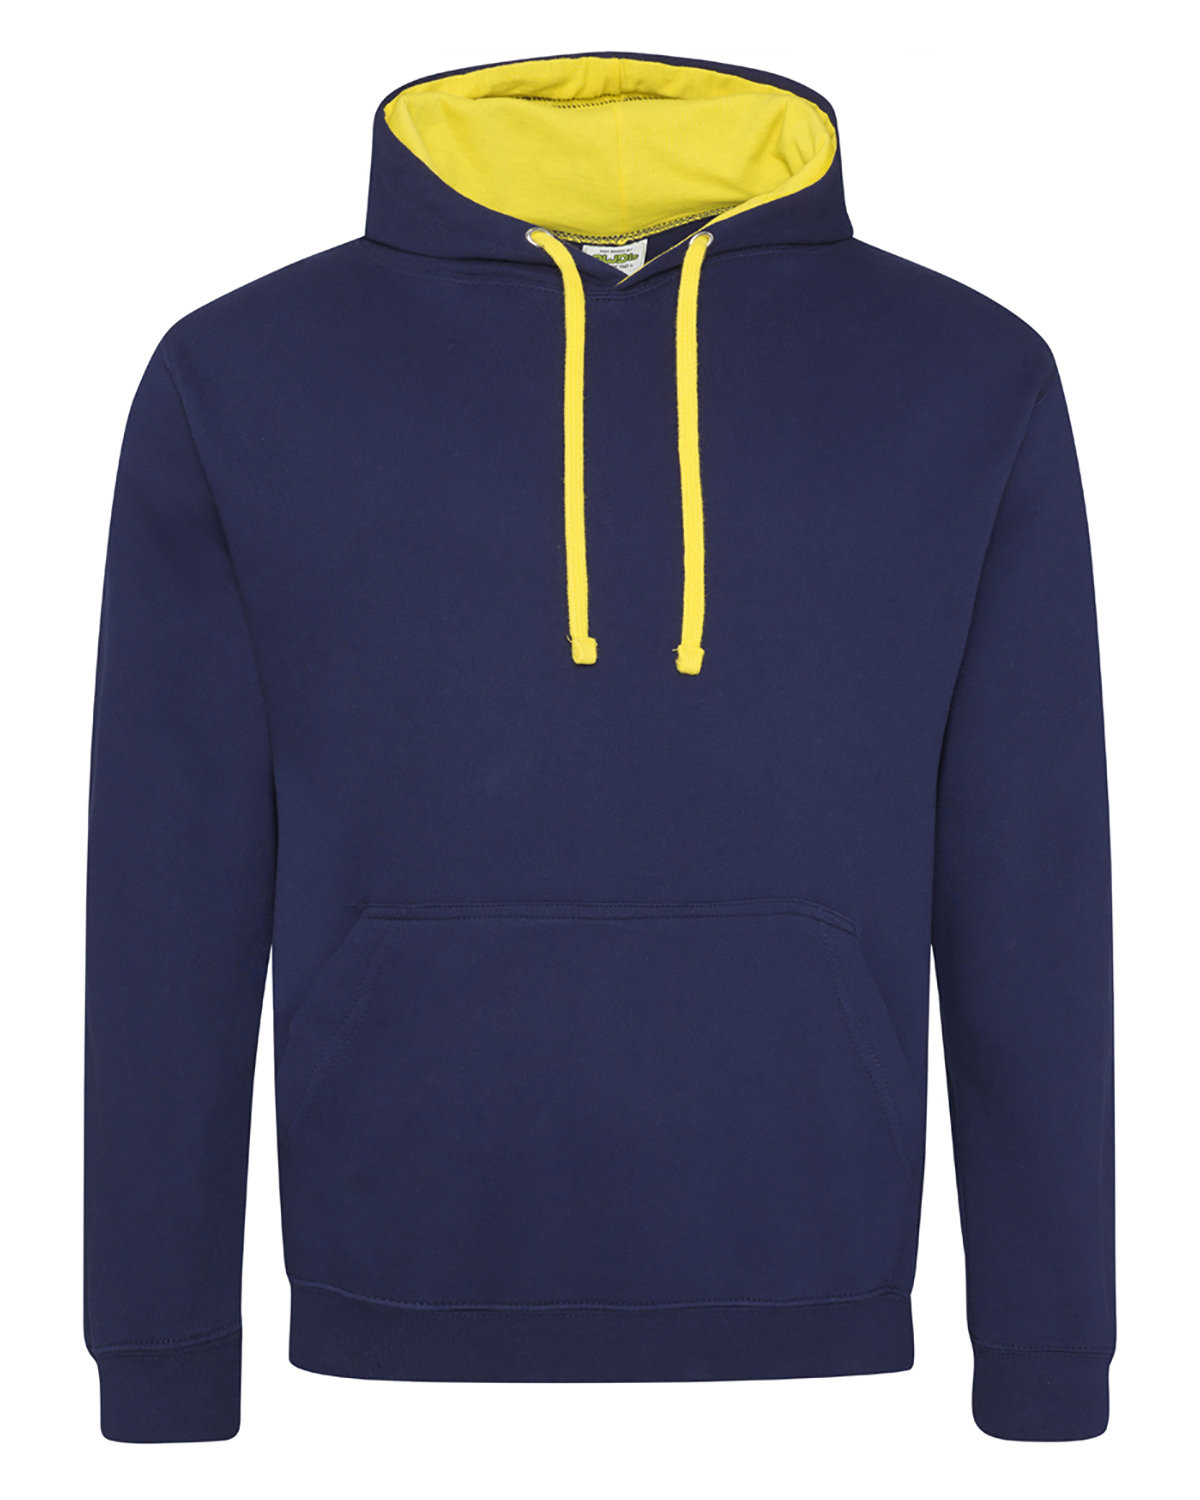 Just Hoods By AWDis Adult 80/20 Midweight Varsity Contrast Hooded Sweatshirt OXF NVY/ SUN YLW